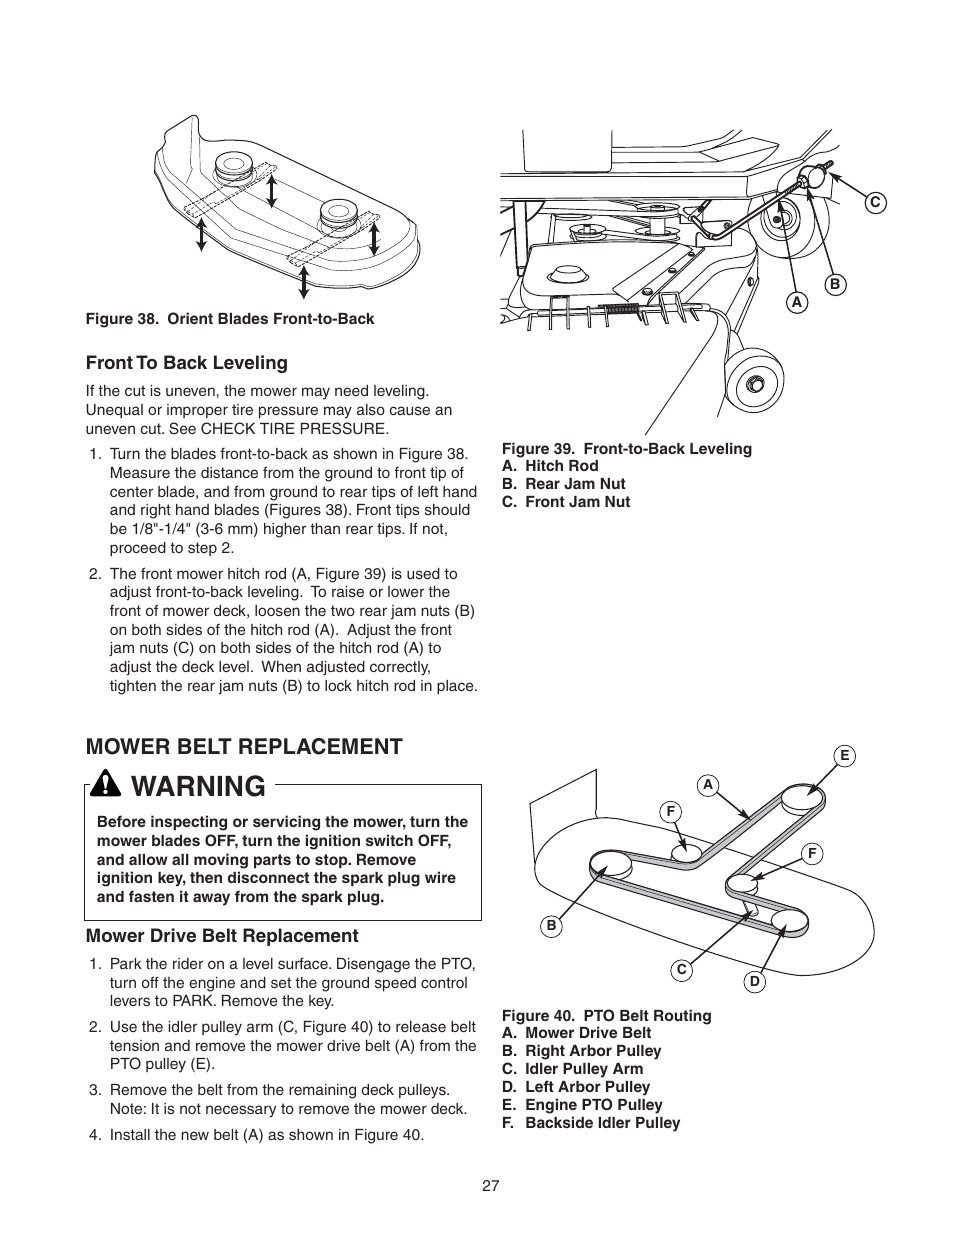 Warning Mower Belt Replacement Snapper 150z Ztr Series User Wiring Diagram For Mowers Manual Page 29 36